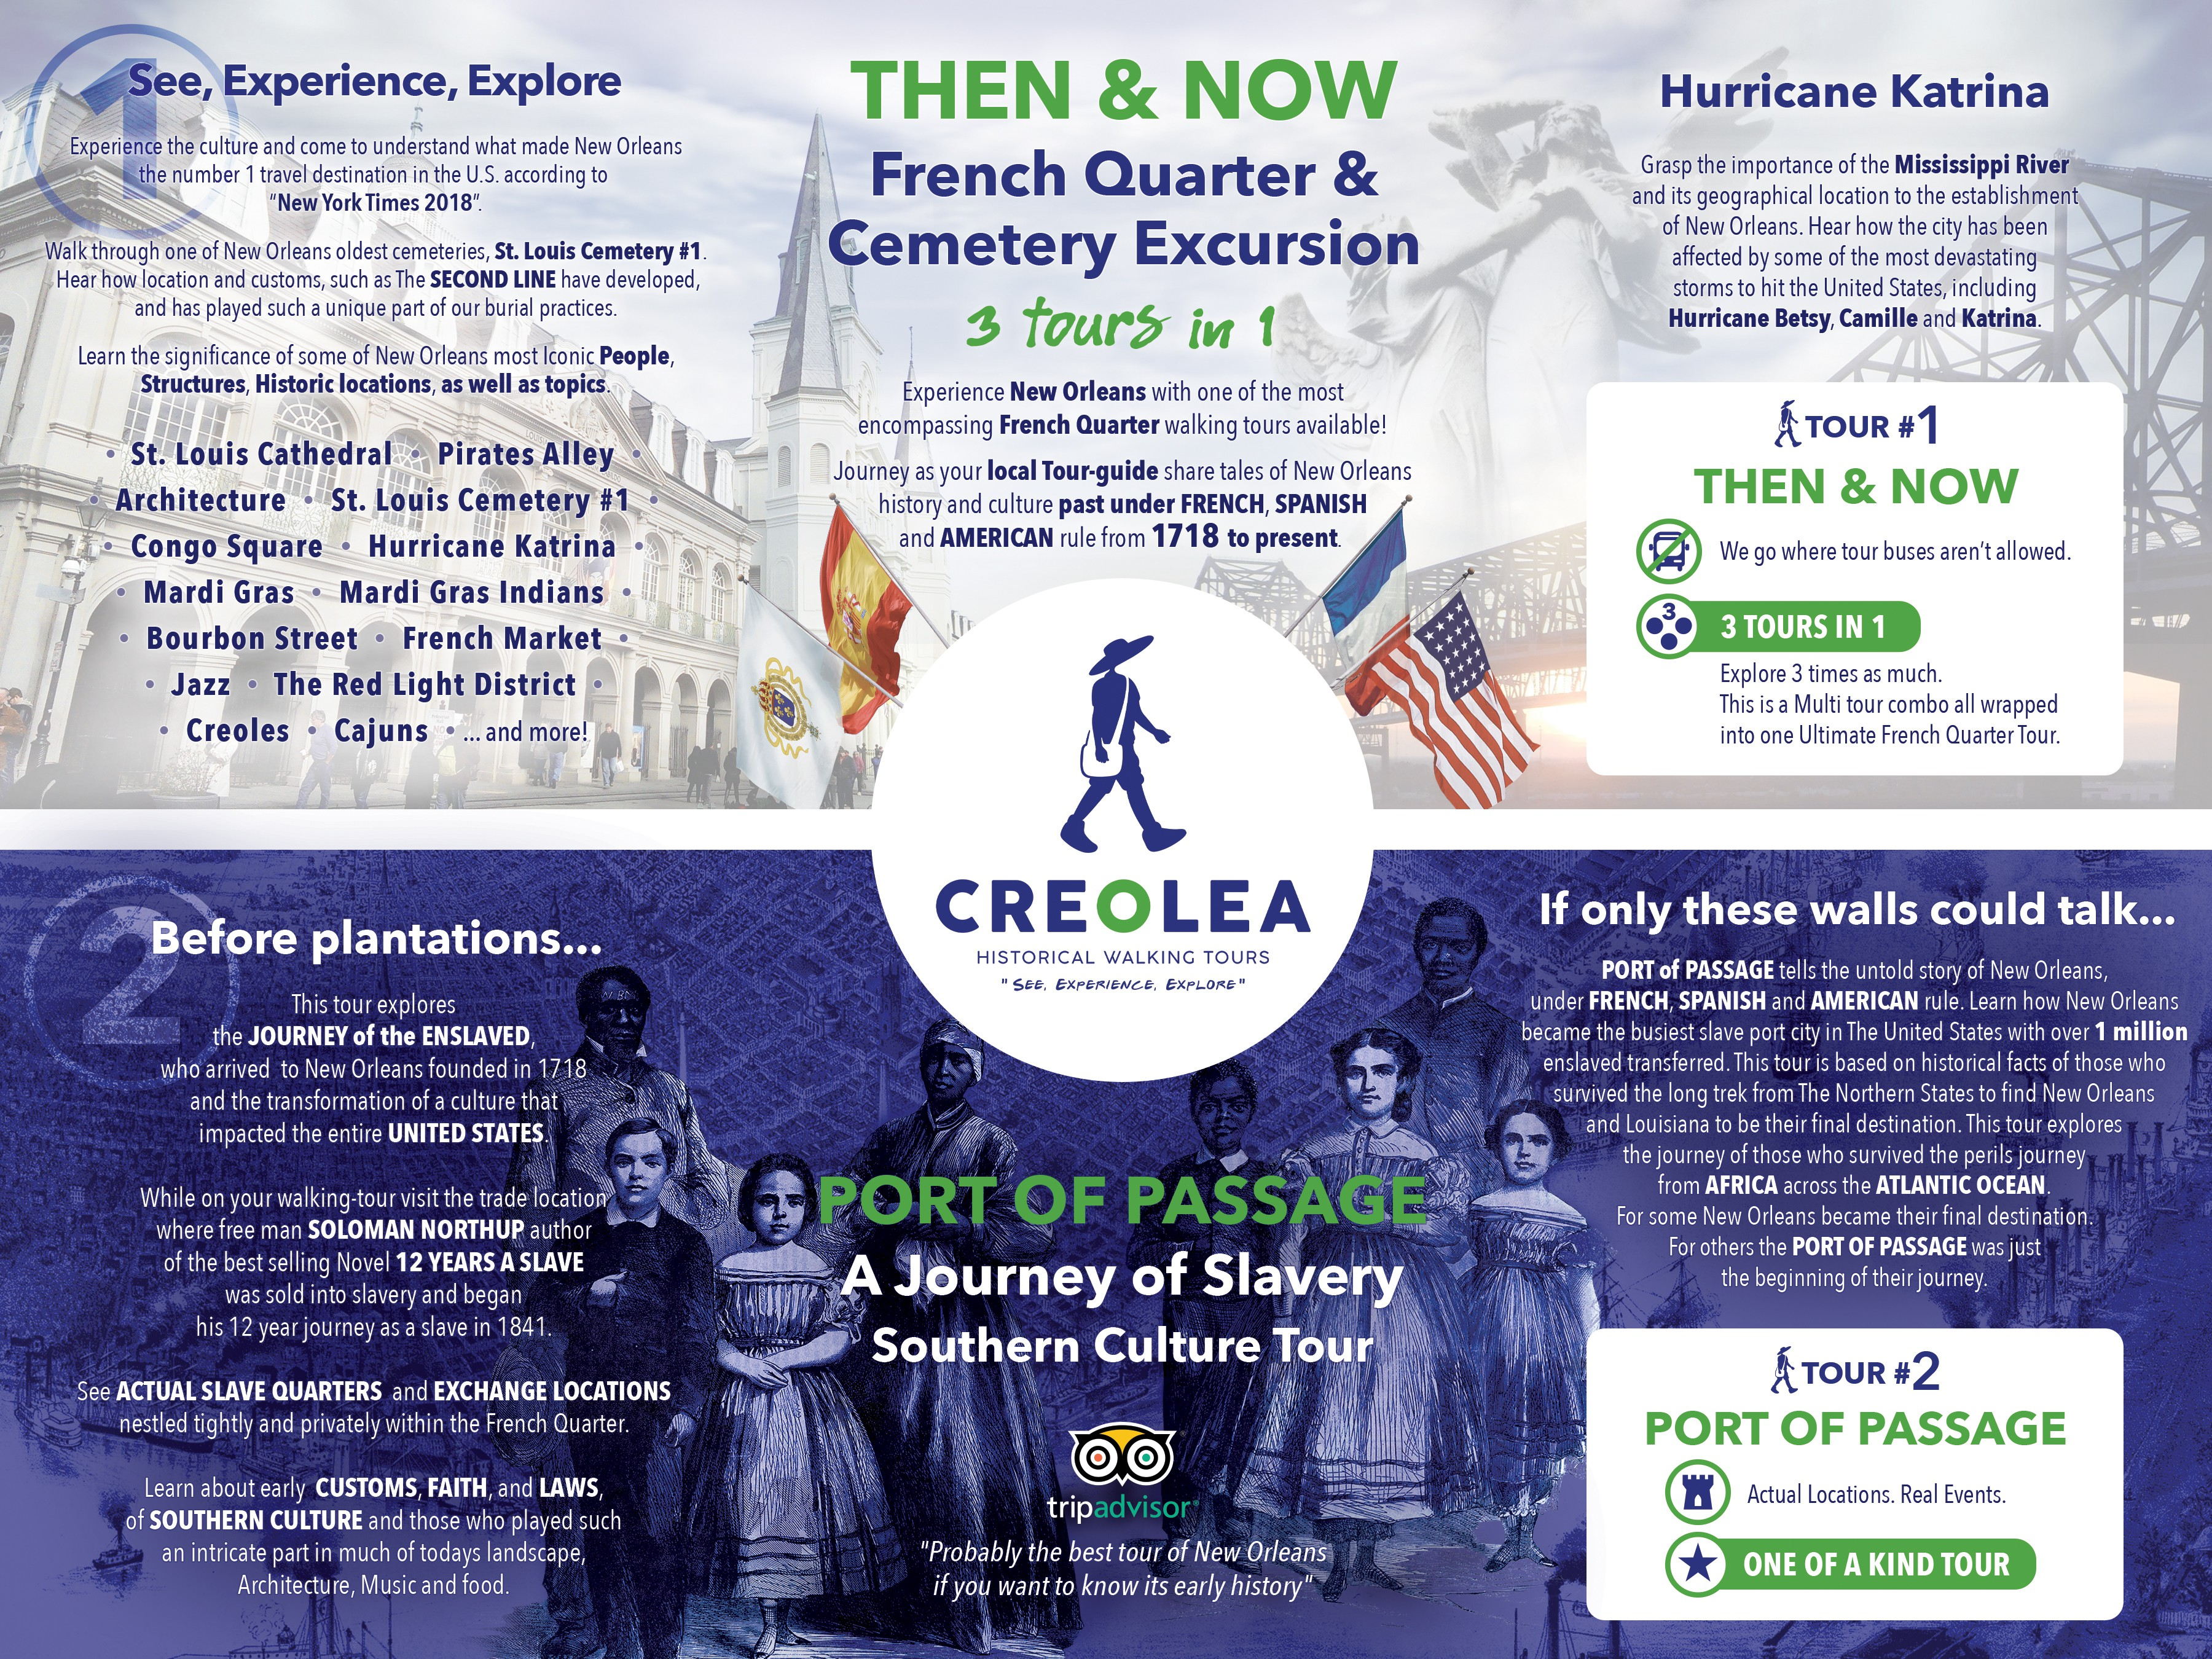 Creolea Historical Tours of New Orleans - new changes (Dec.2019)